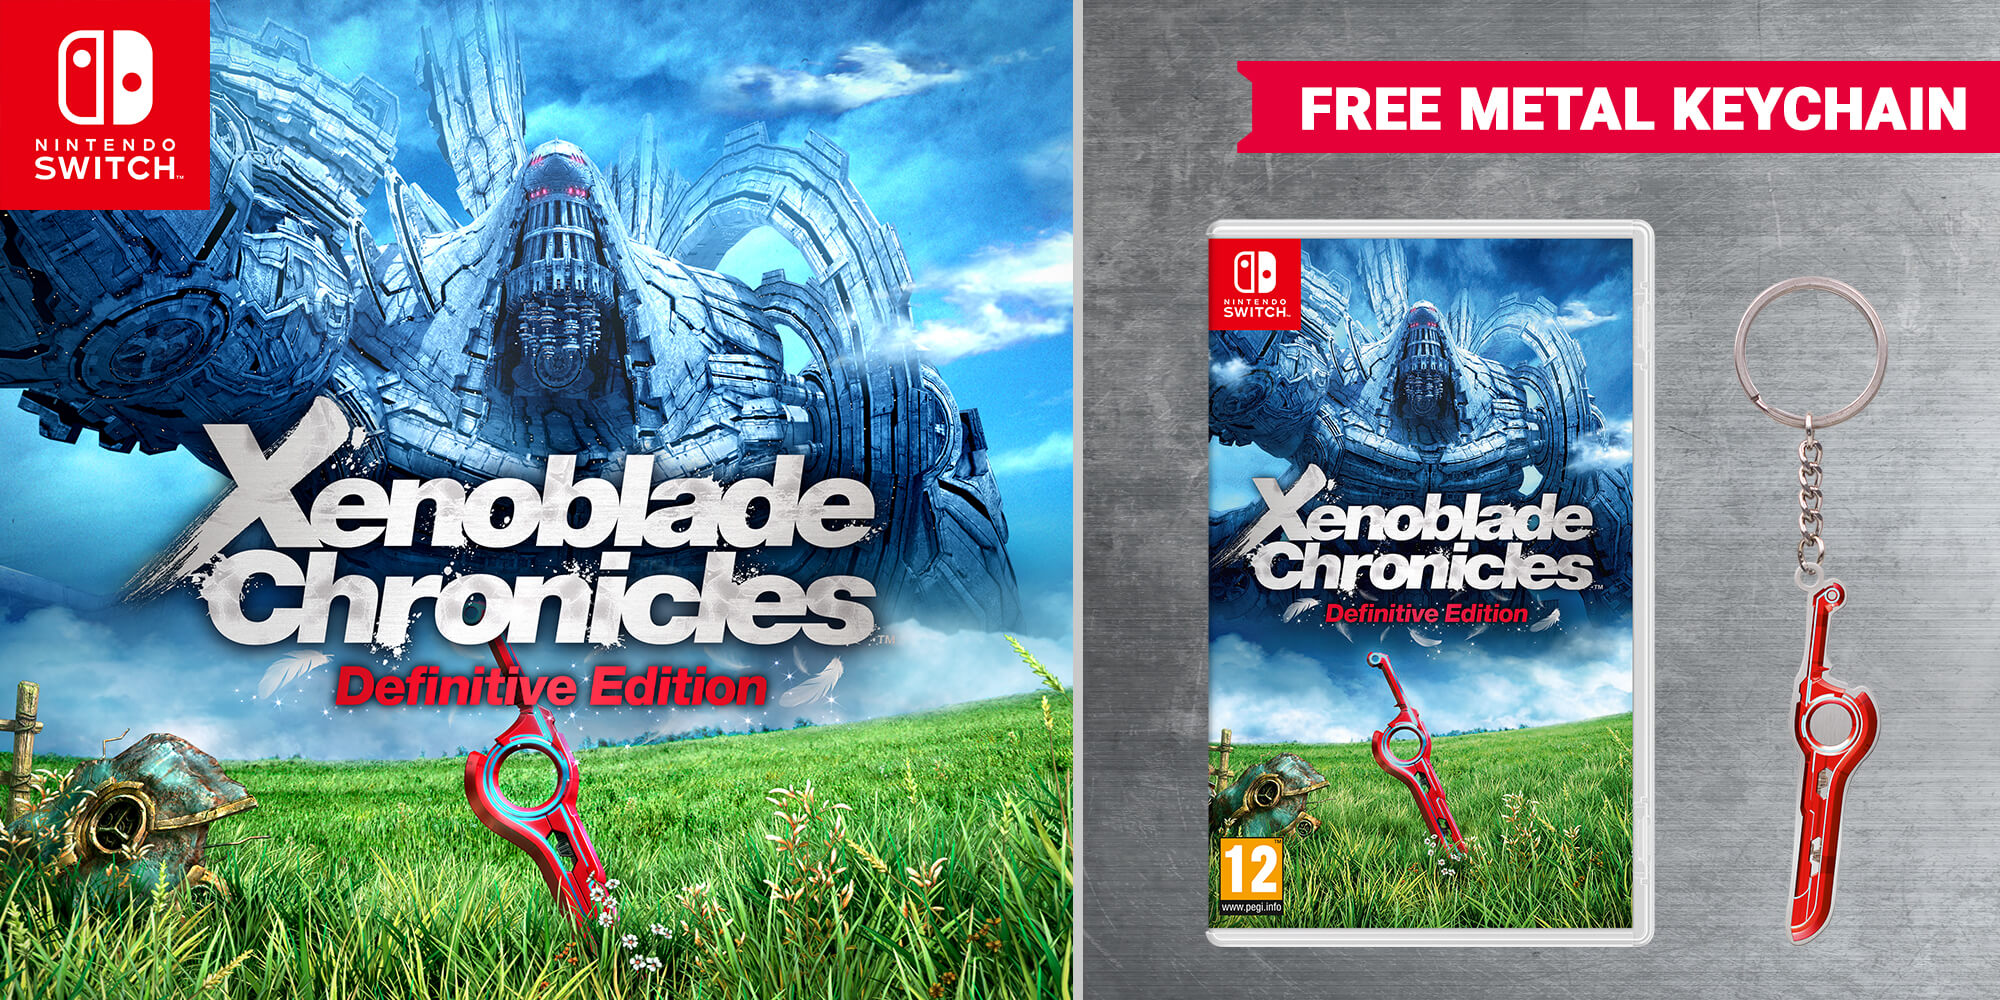 Pre-order Xenoblade Chronicles: Definitive Edition